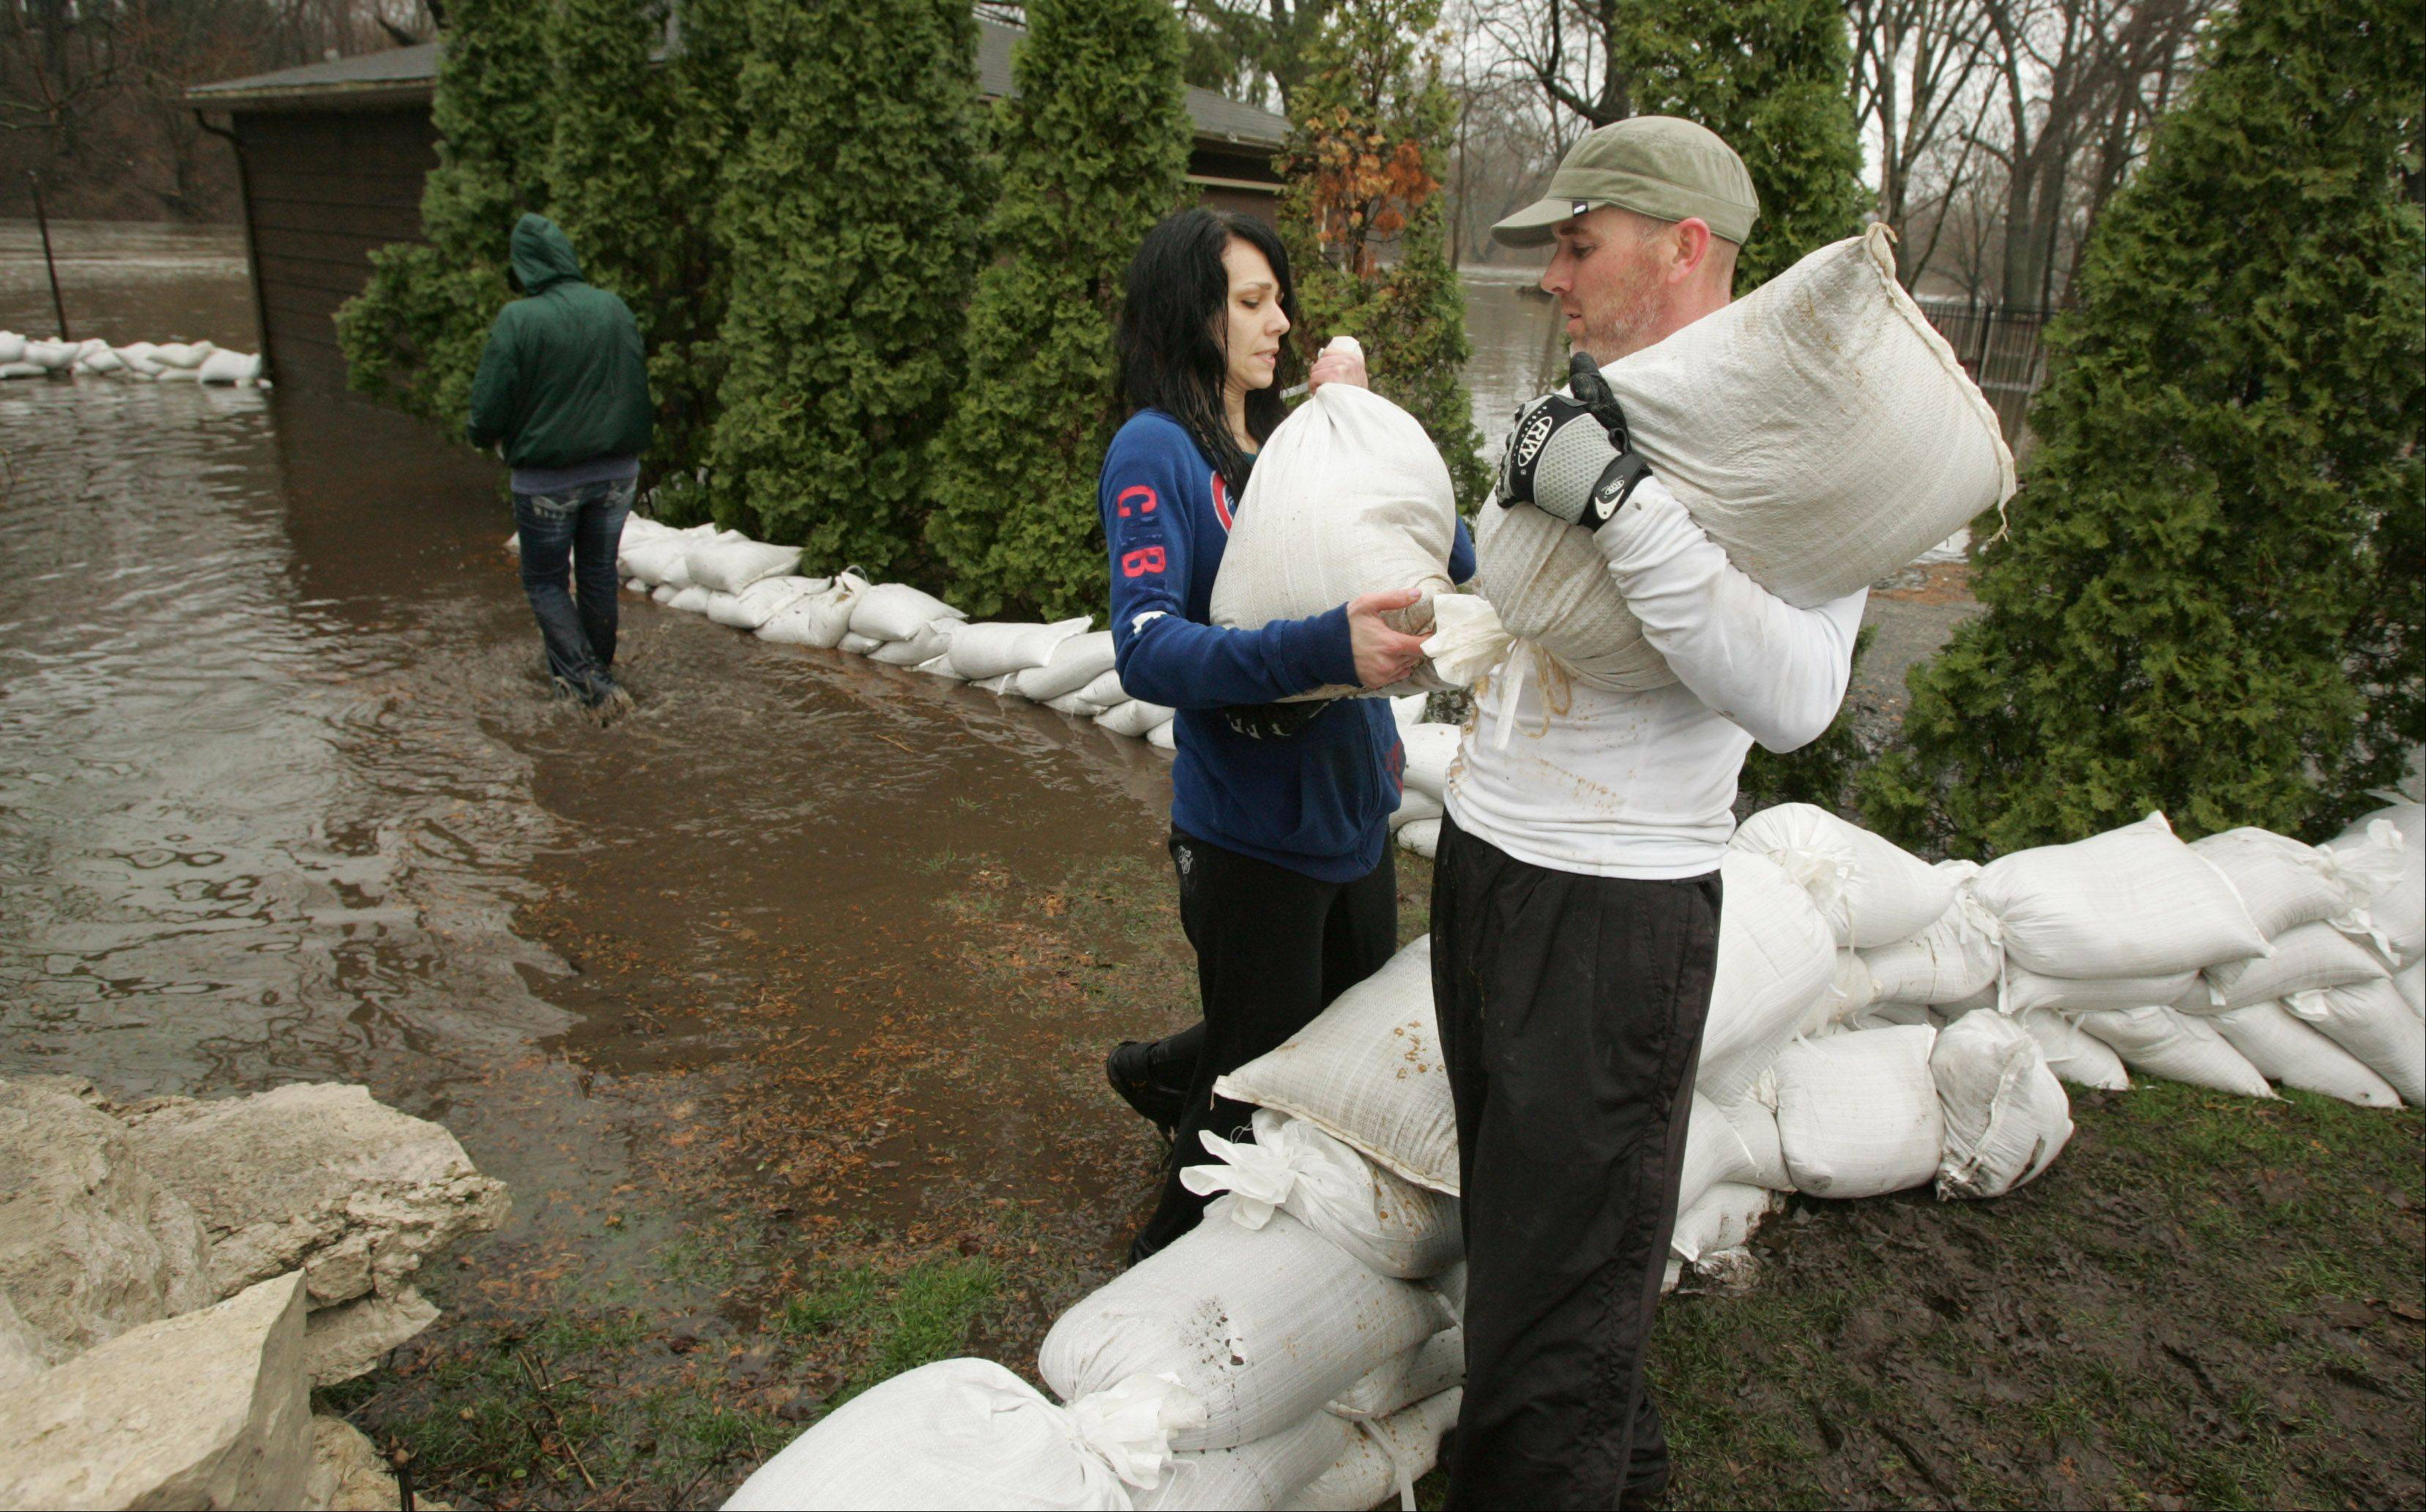 Algonquin resident David Bateman hands a sand bag to Corinne Breskovich of Crystal Lake as they join with other to protect a home along the Fox River in Algonquin Thursday morning.